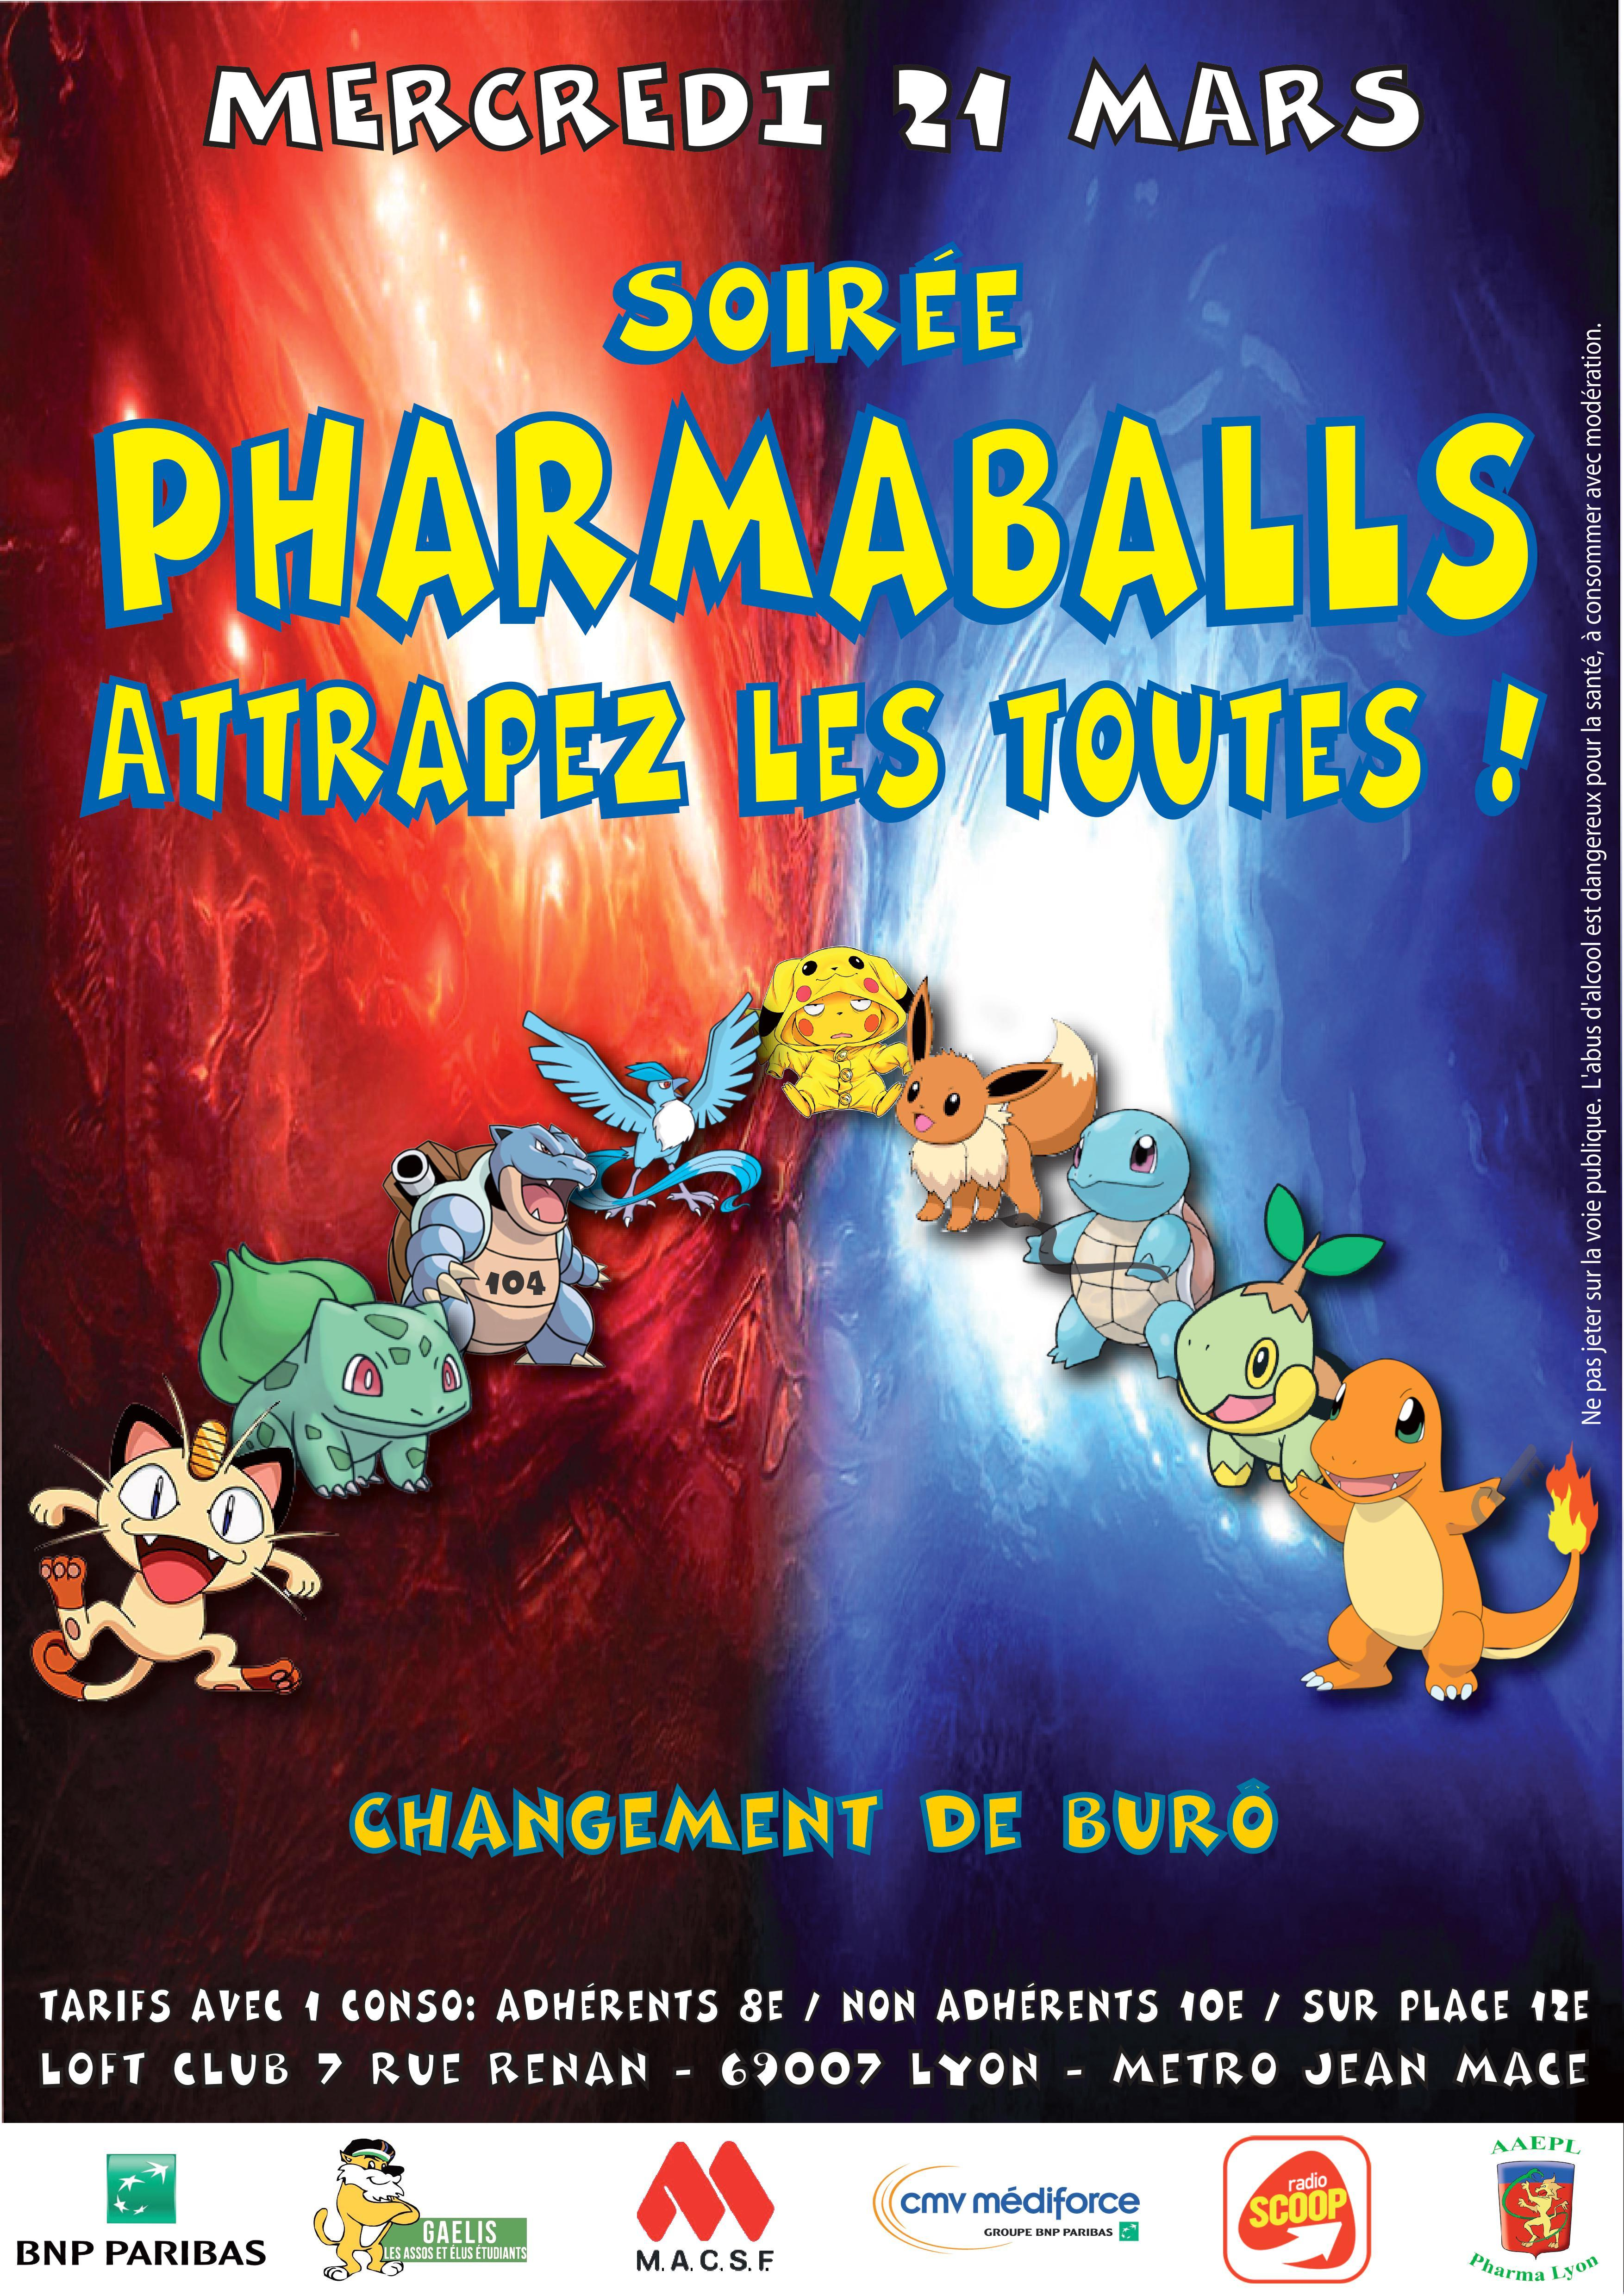 Soir e tudiante pharmaballs changement de bur for Buro club lyon